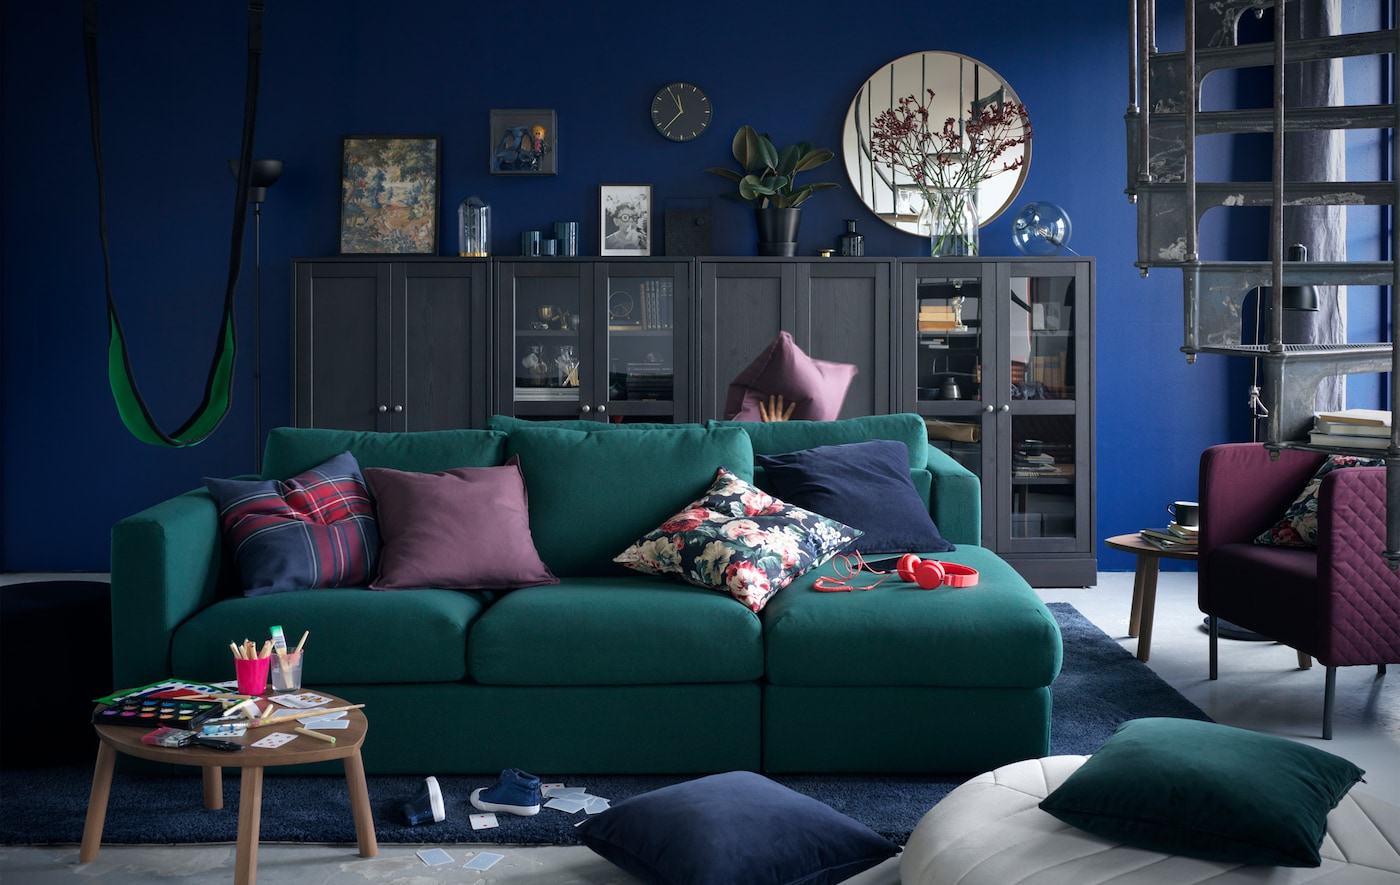 A comfortable IKEA VIMLE sofa serves as a much loved centerpiece for the living room.